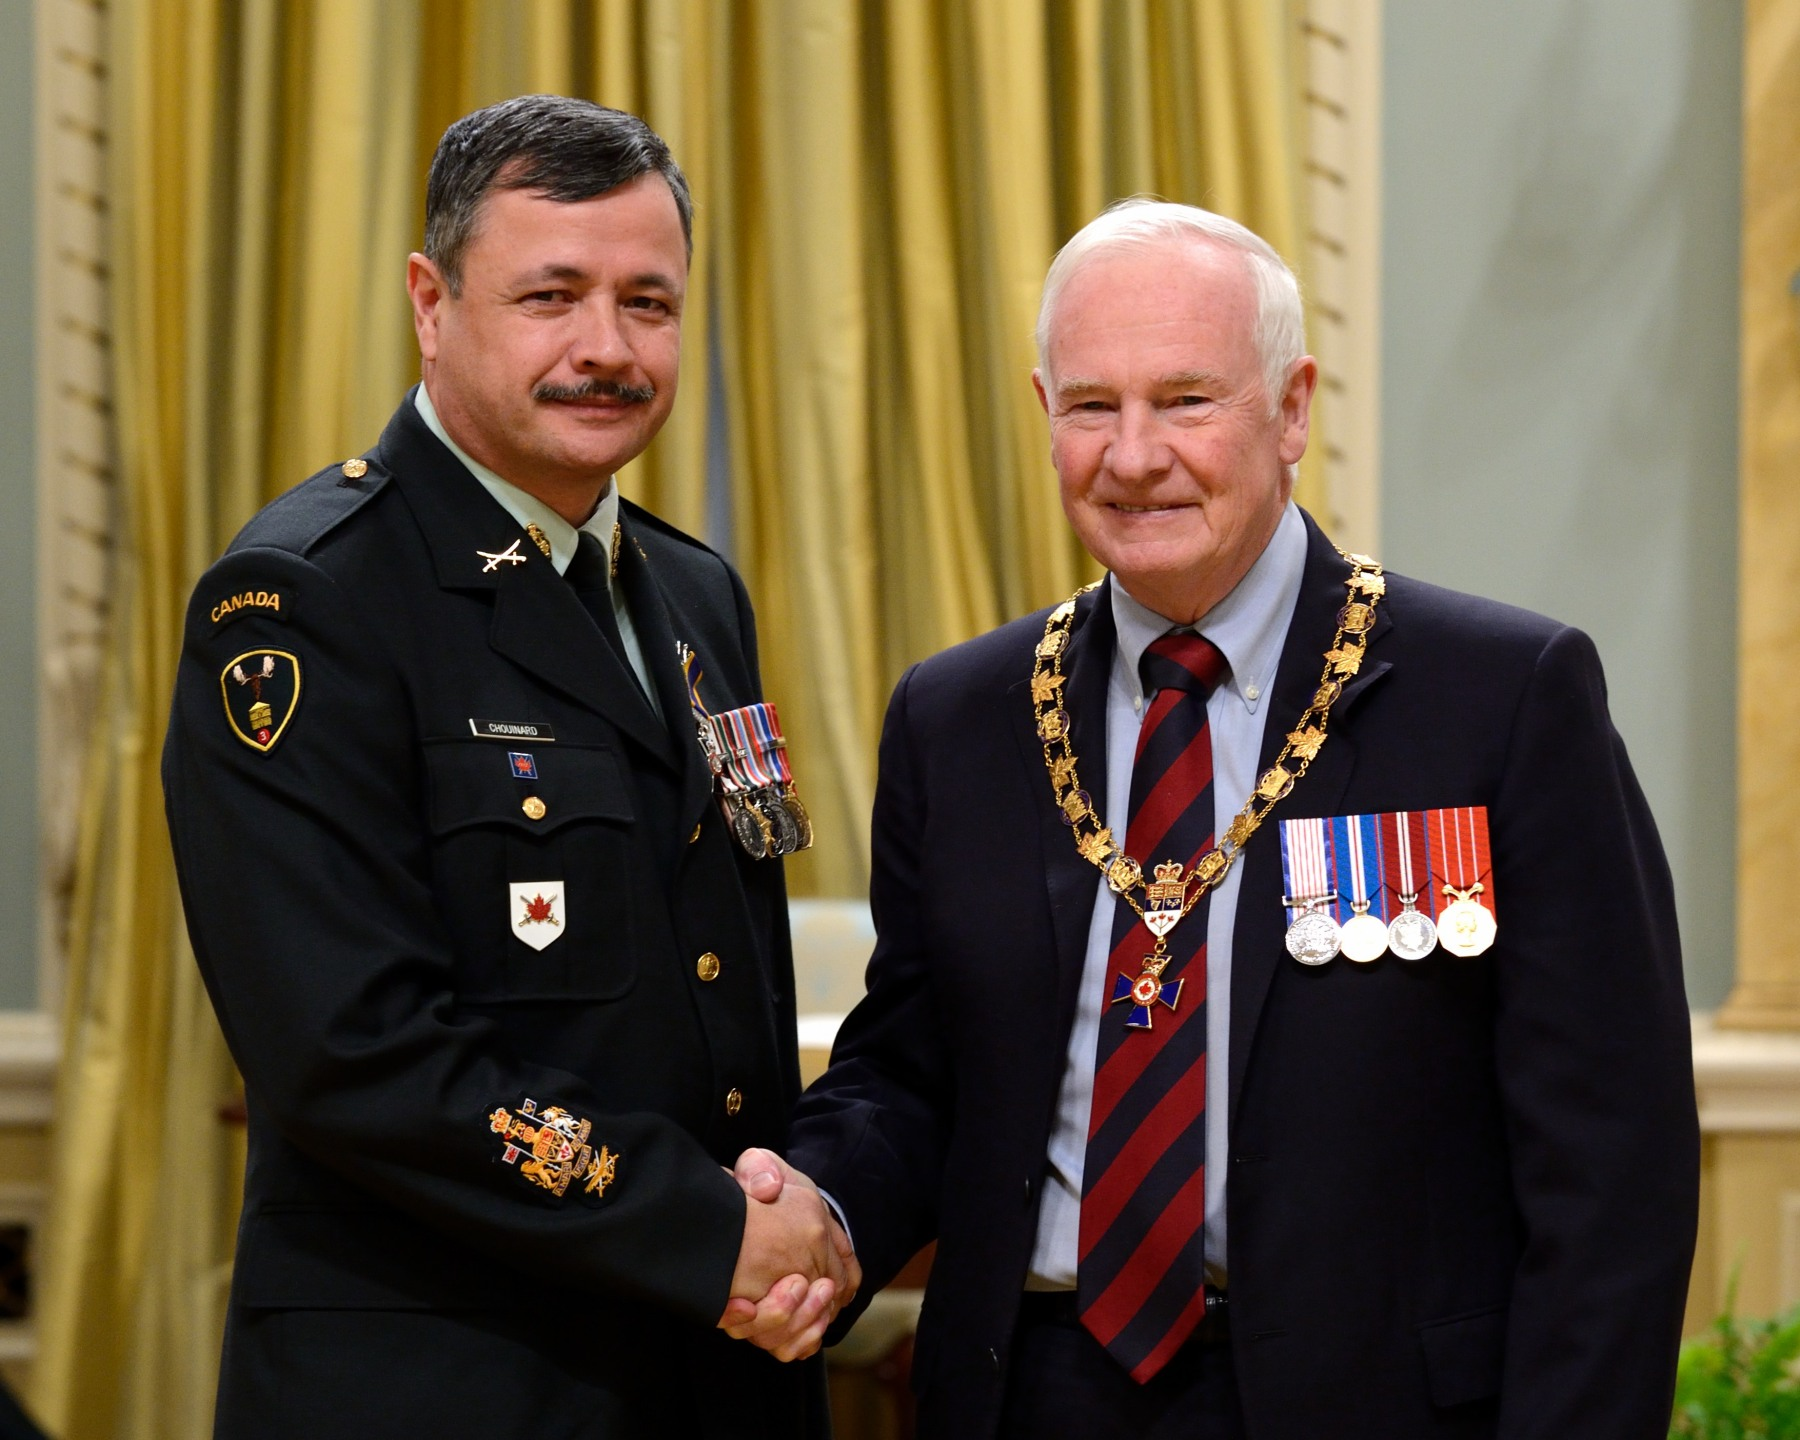 His Excellency presented the Order of Military Merit at the Member level (M.M.M.) to Chief Warrant Officer Claude Chouinard, M.M.M., C.D., Armour School (Oromocto, N.B.).